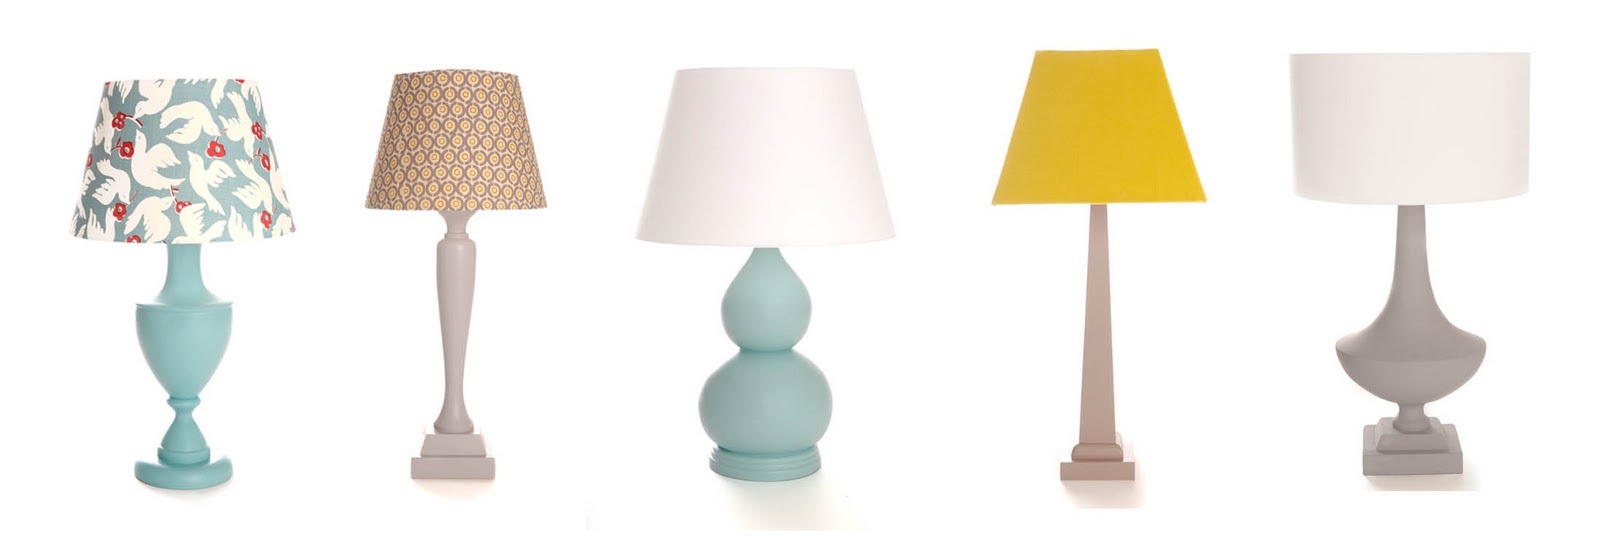 TOP 10 Types of lamps 2018